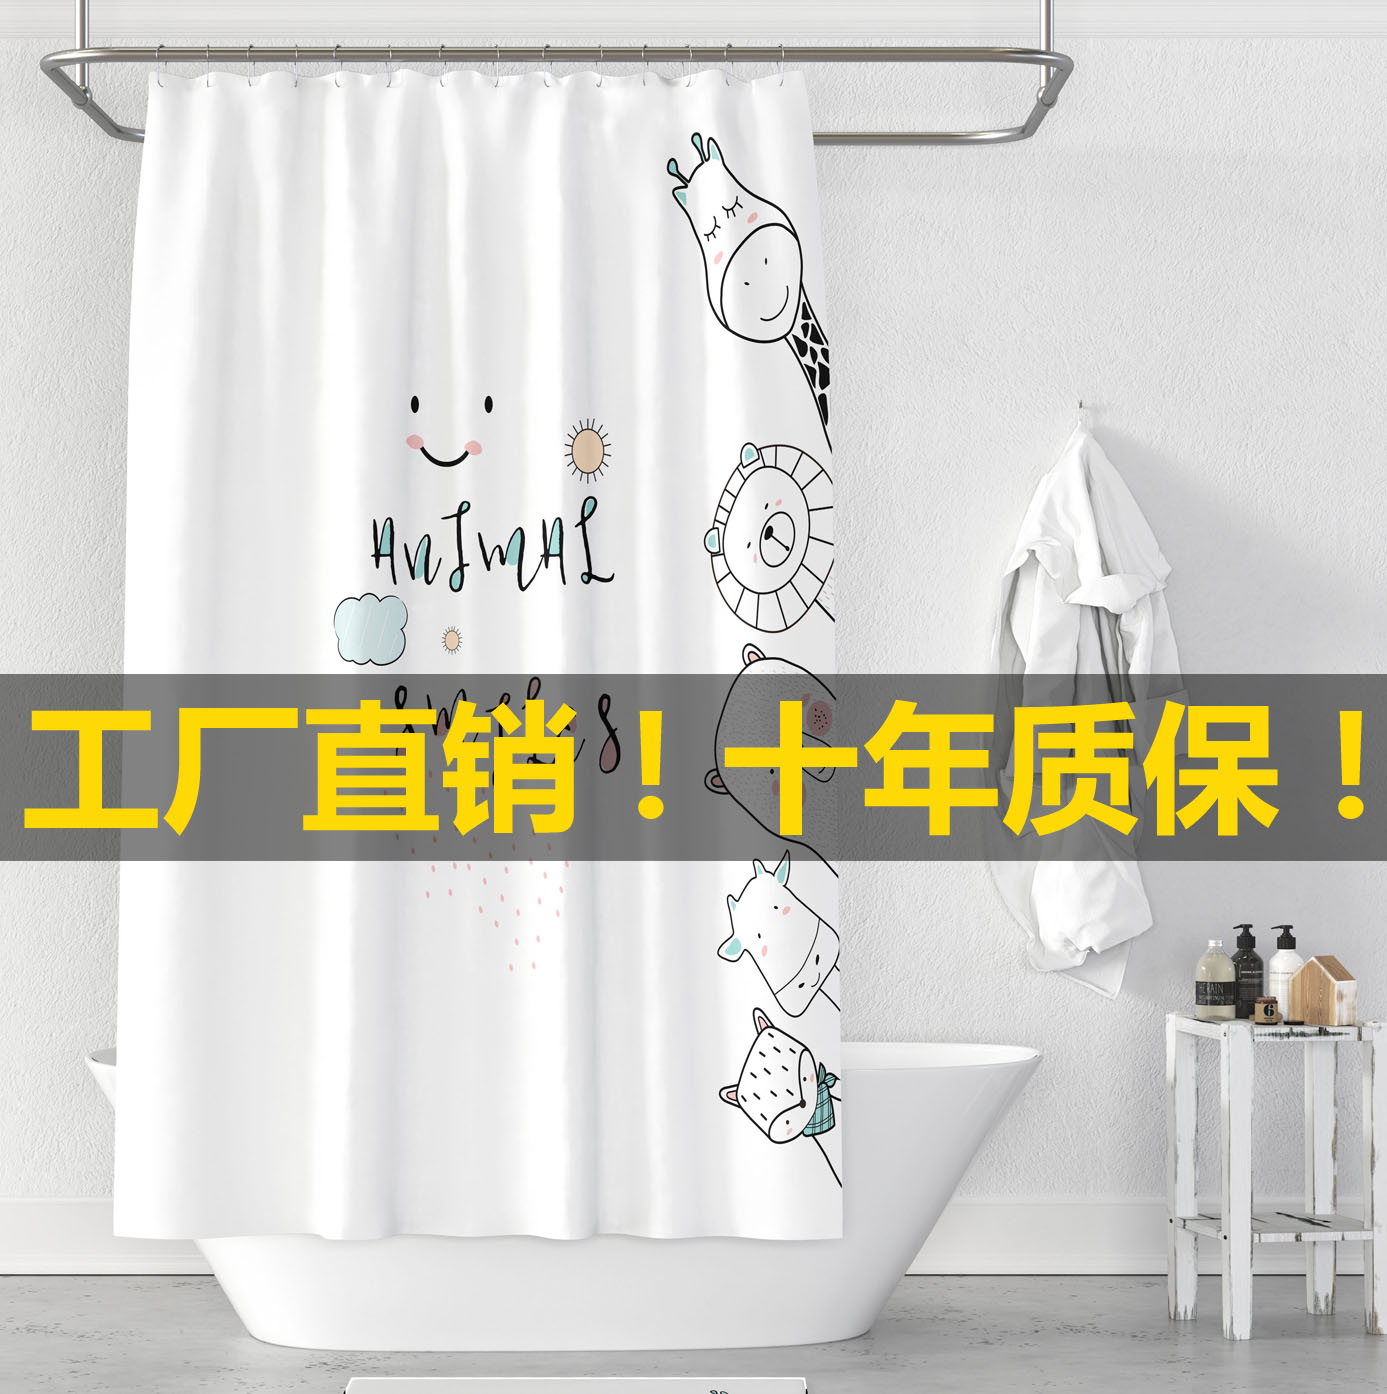 Ins Nordic Light Luxury Bathroom Toilet Personality Creative